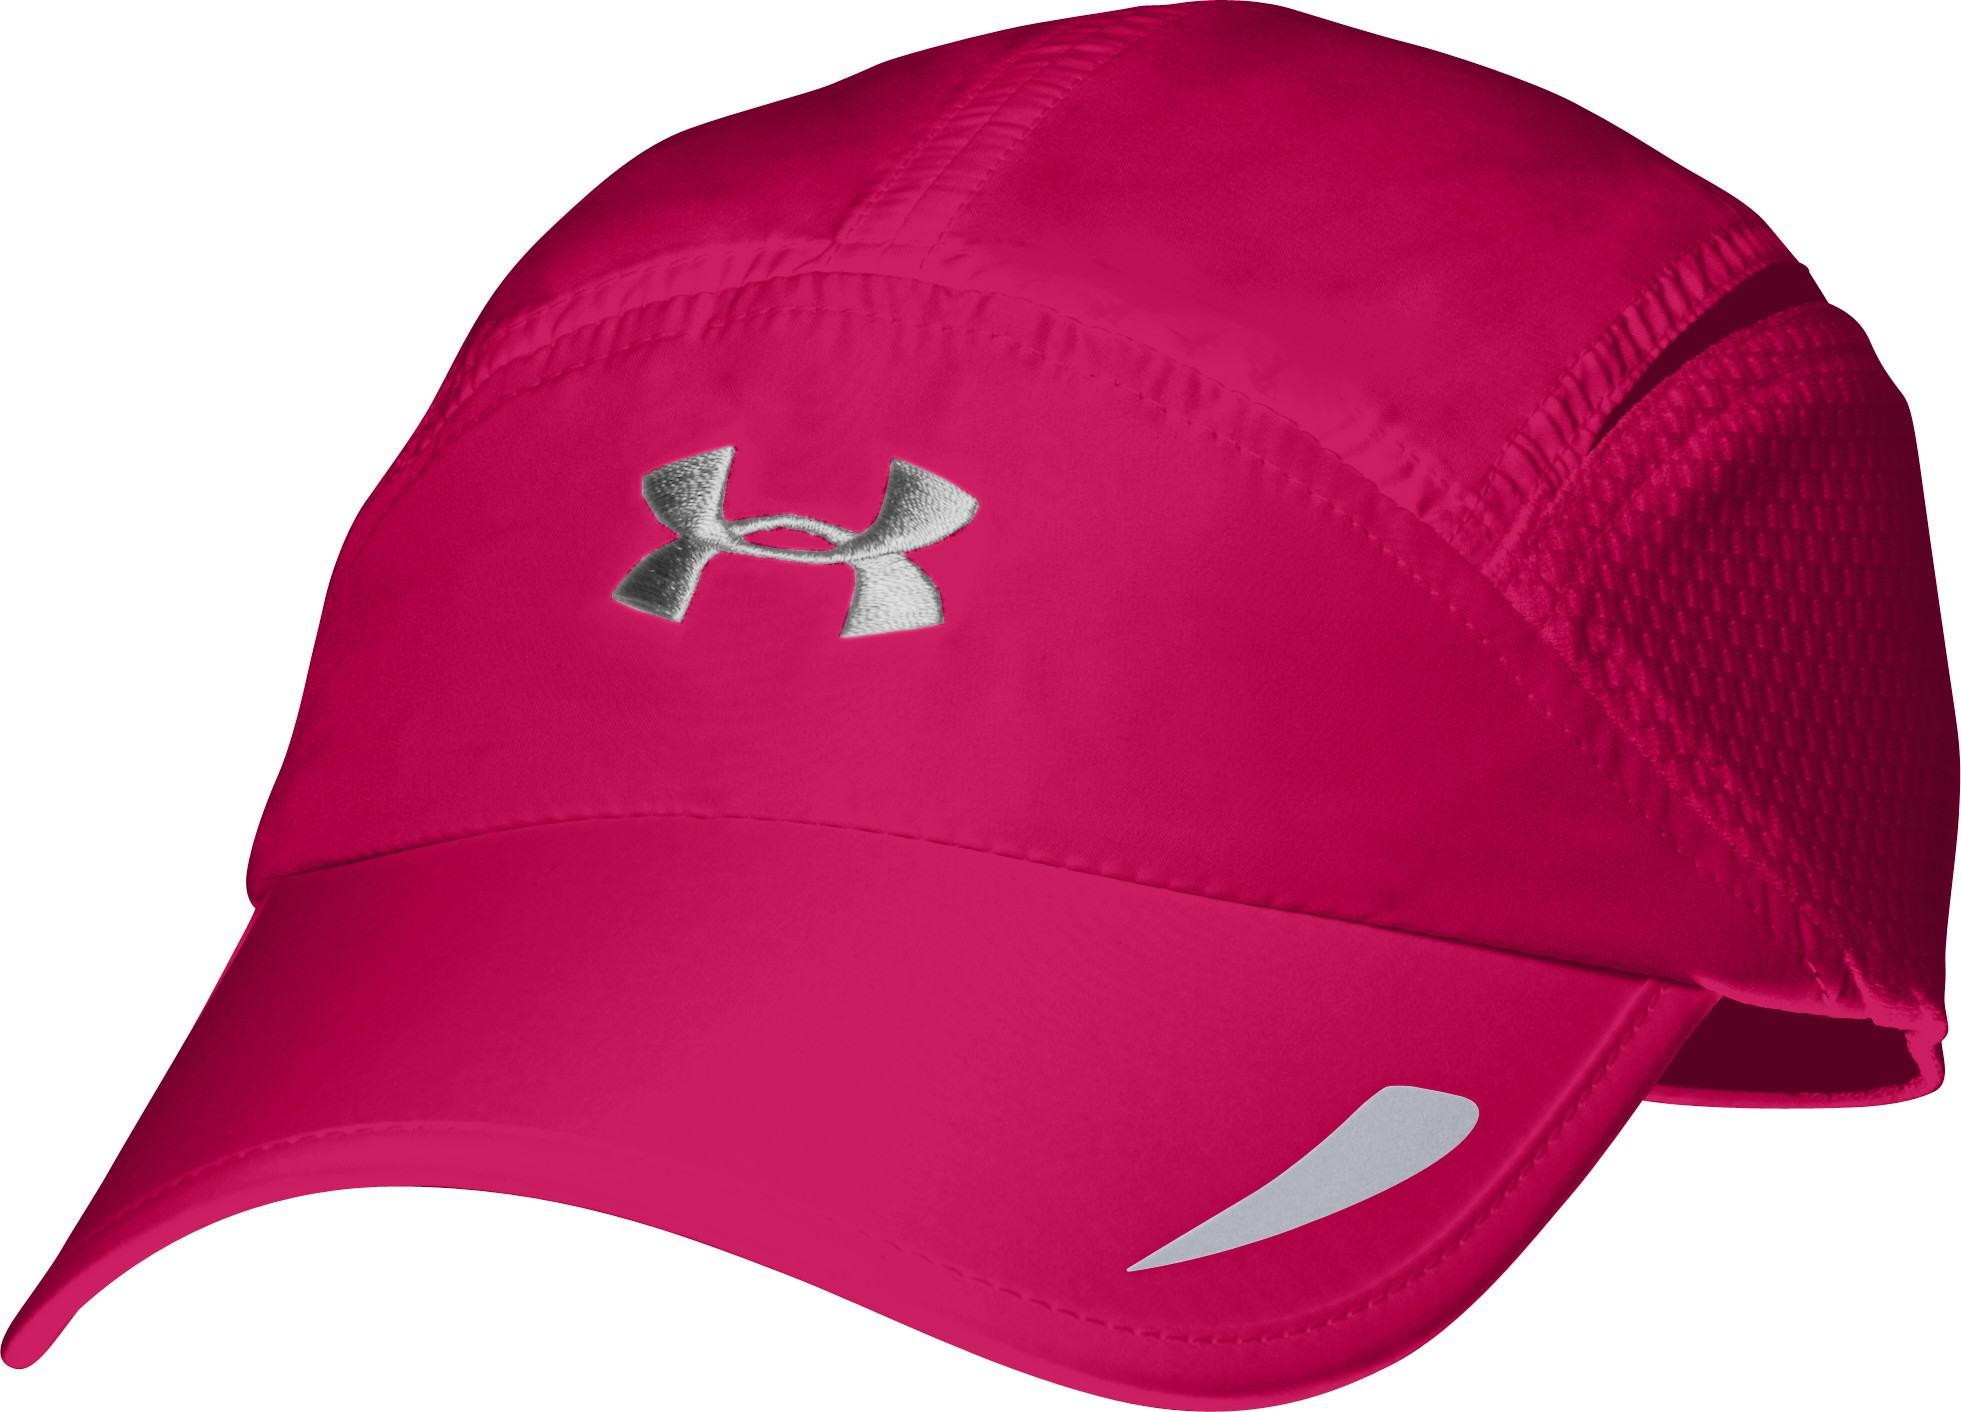 Under Armour Adrenaline Cap